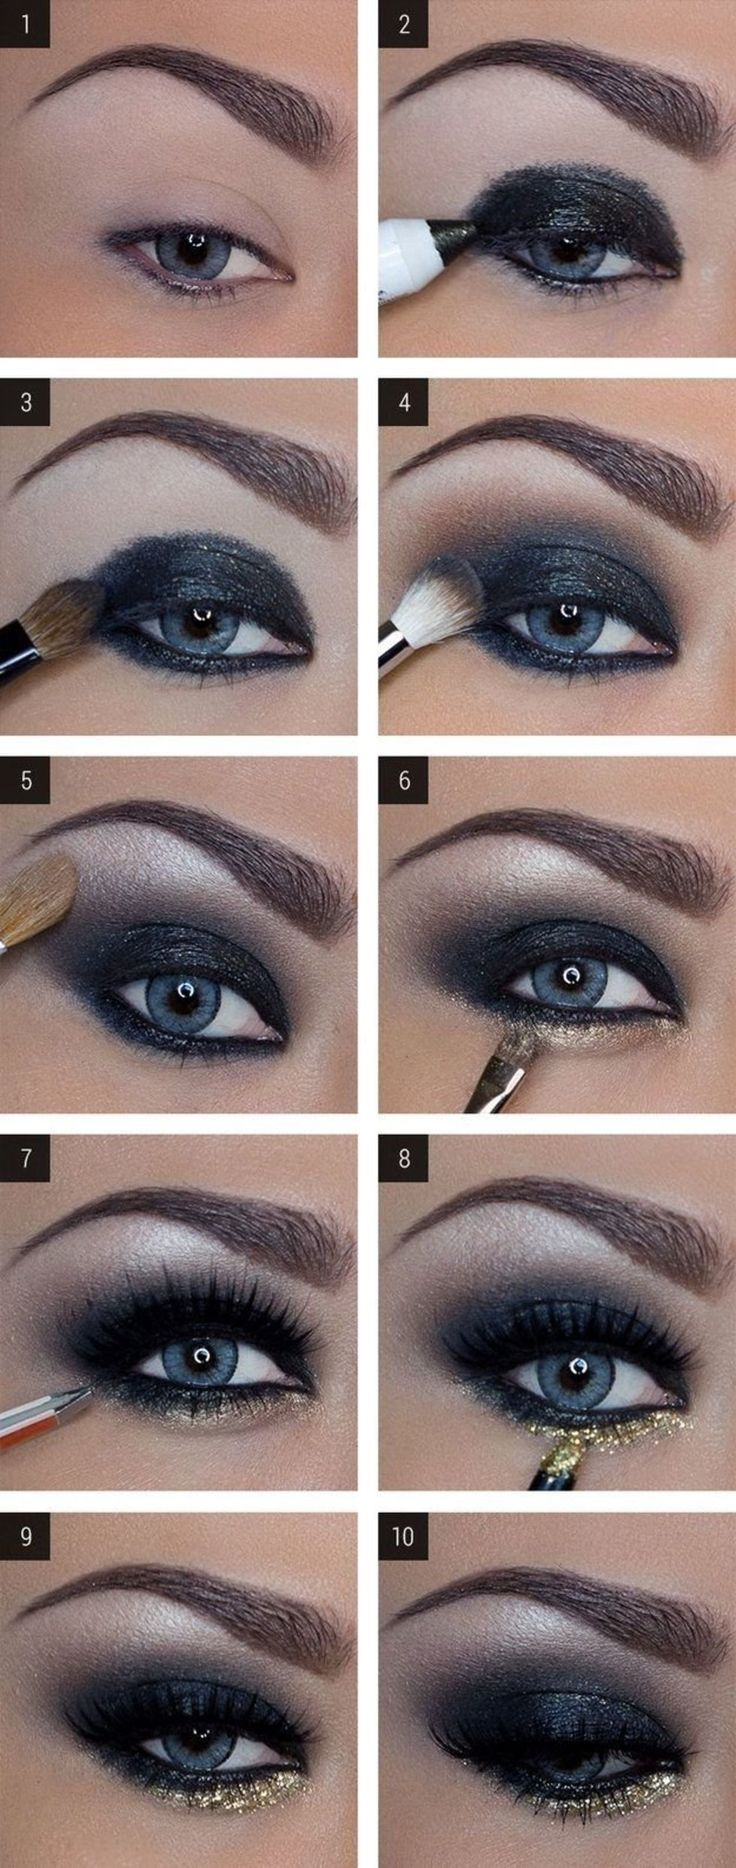 A bold smokey eye